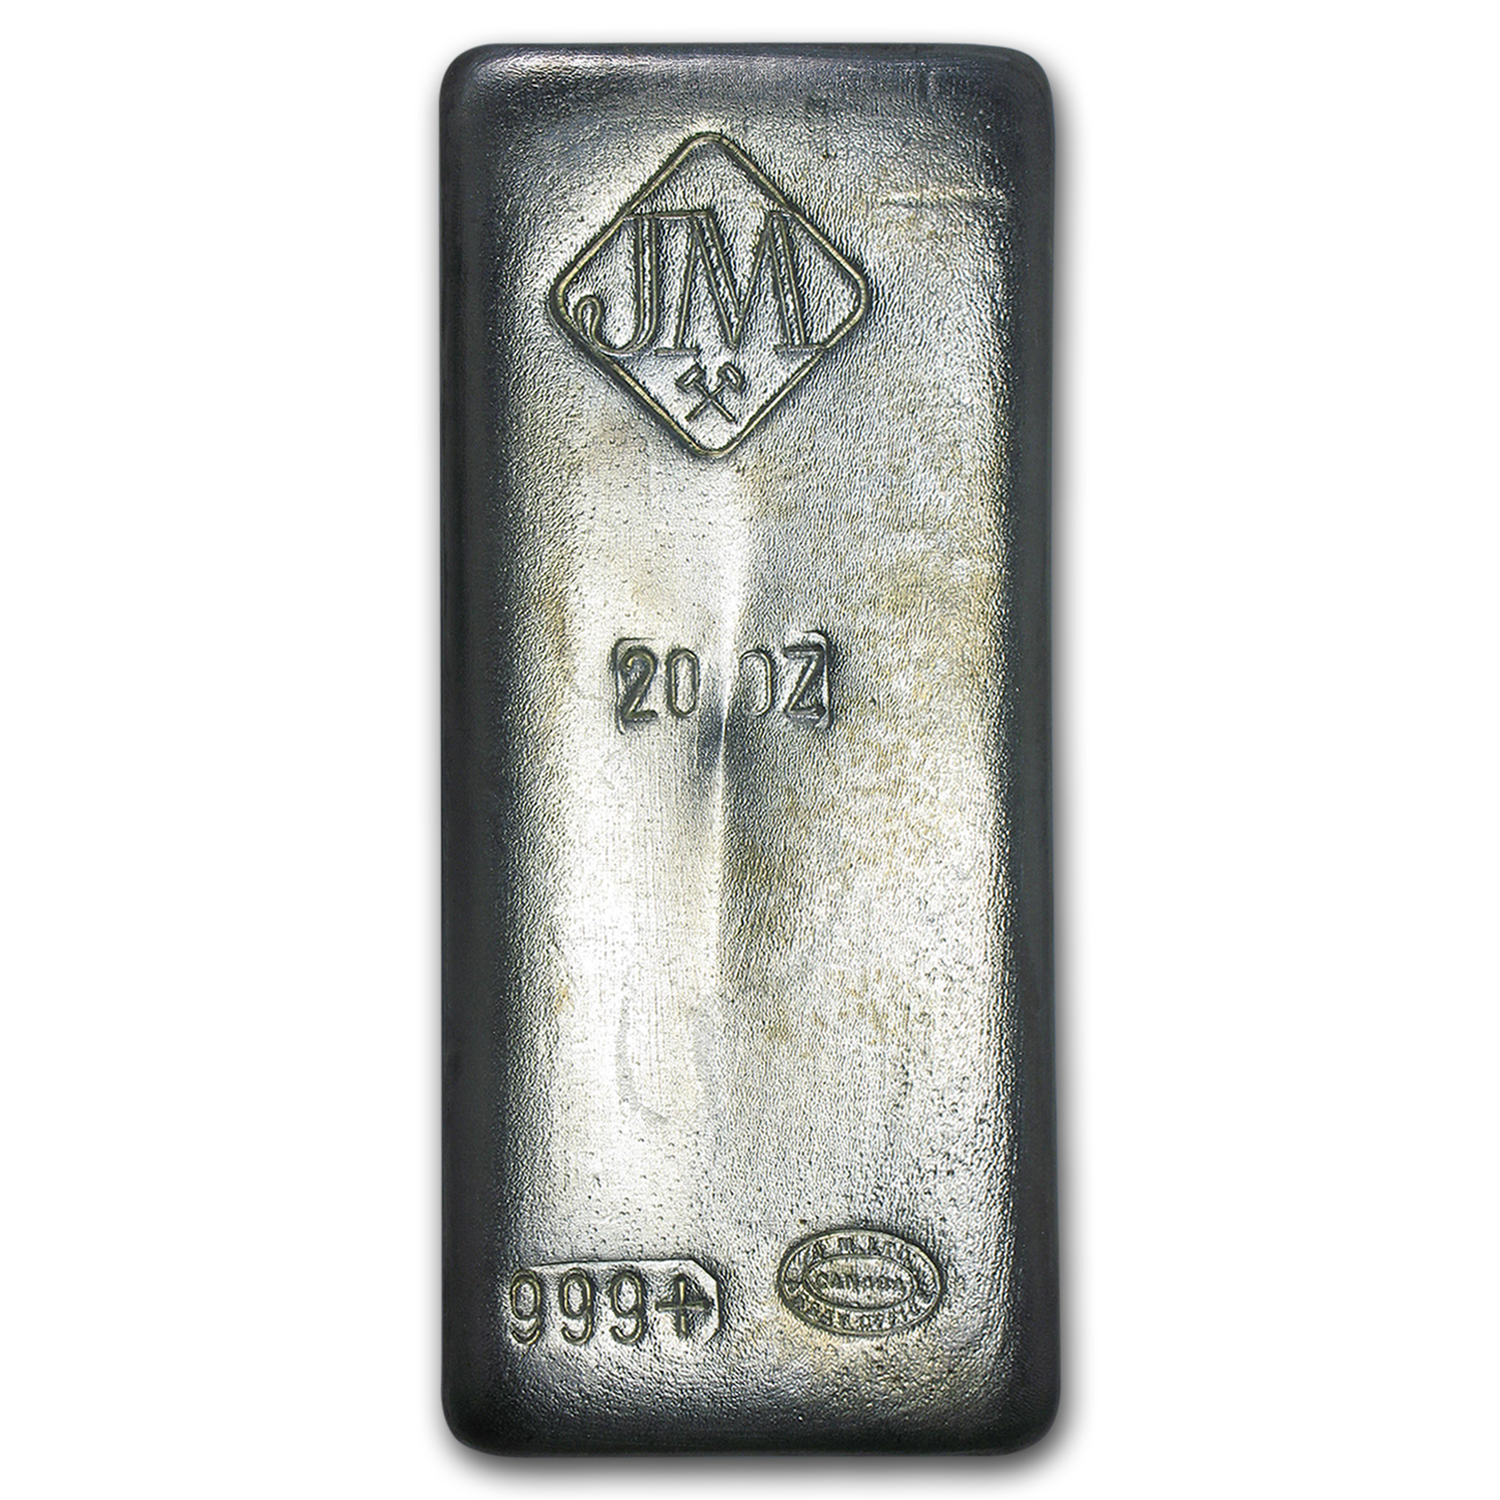 20 oz Silver Bar - Johnson Matthey (Canada, Vintage)